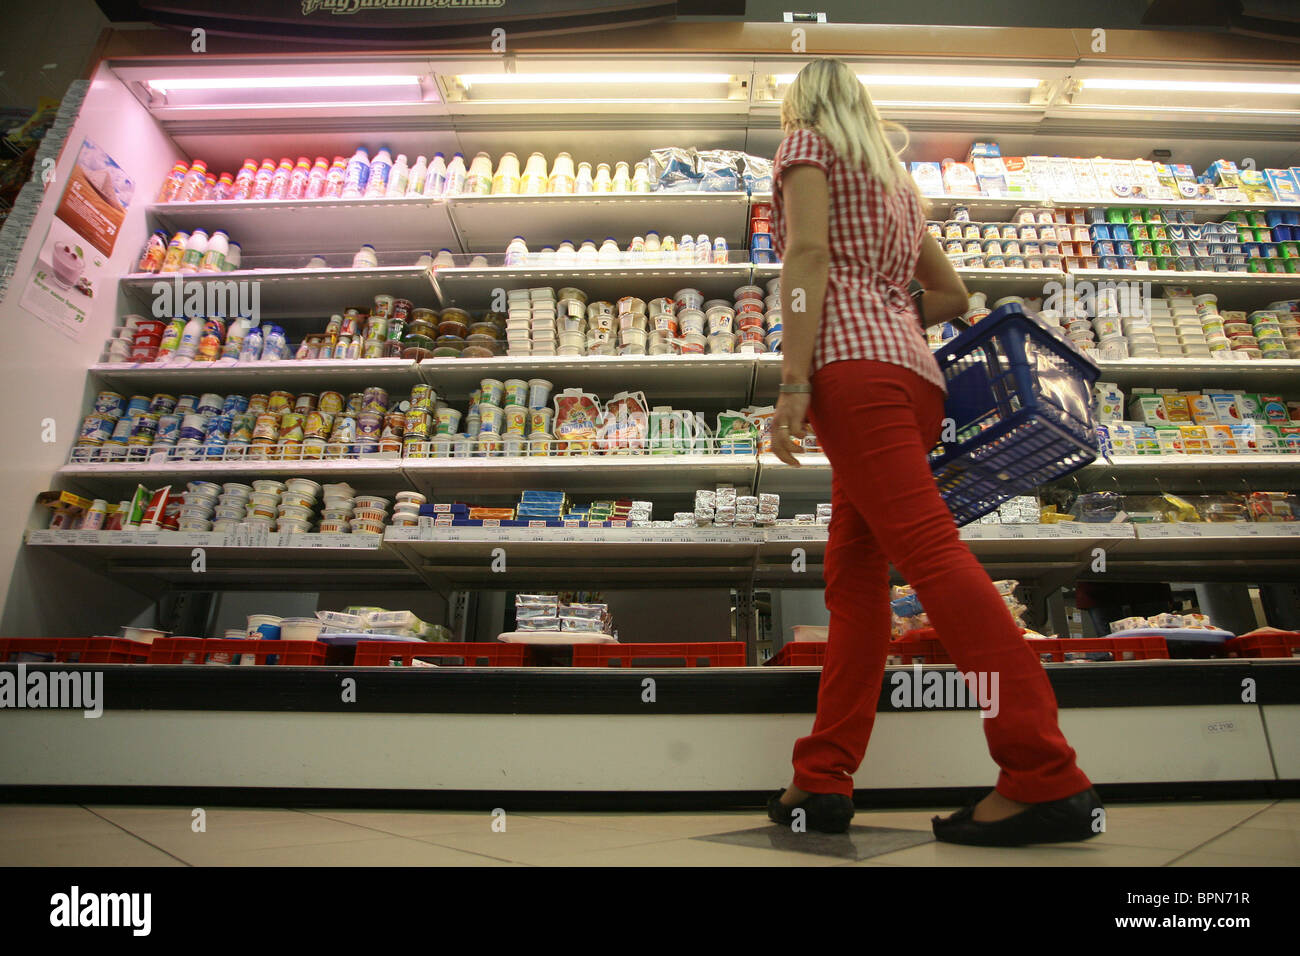 Russia bans imports of Belarus dairy products - Stock Image